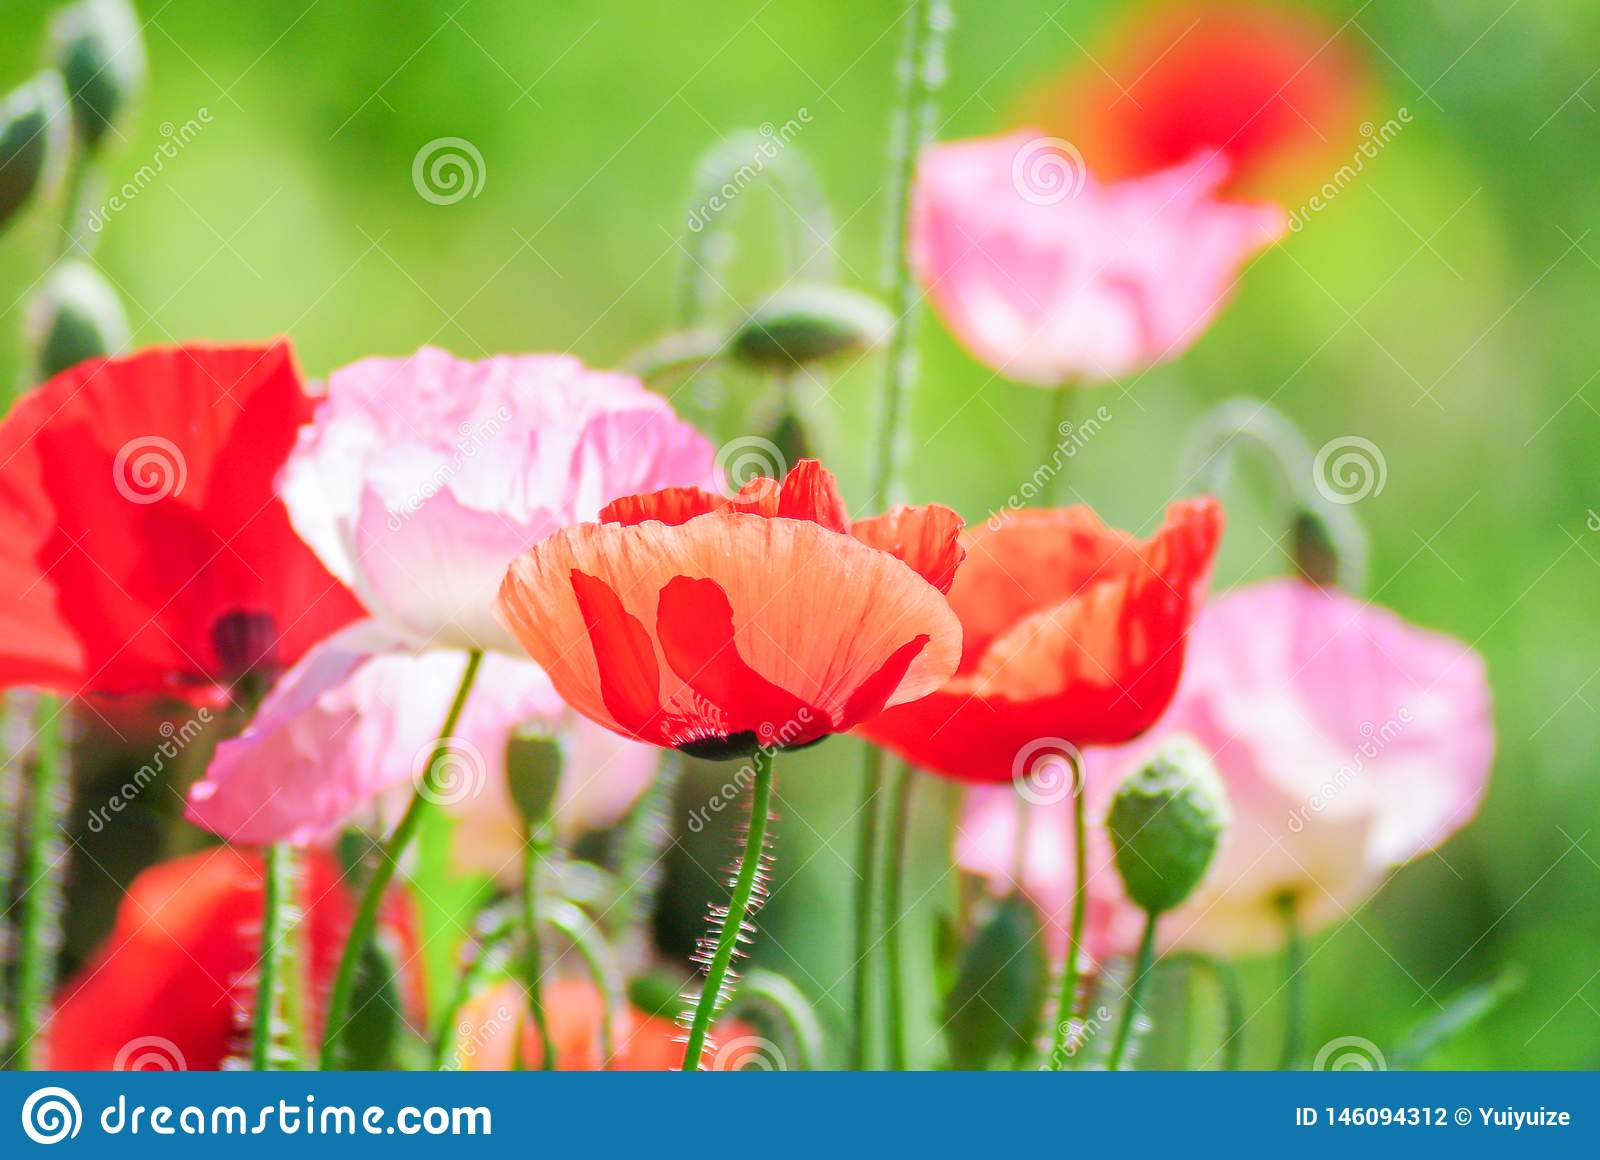 Red and pink poppy flowers in a field, red papaver